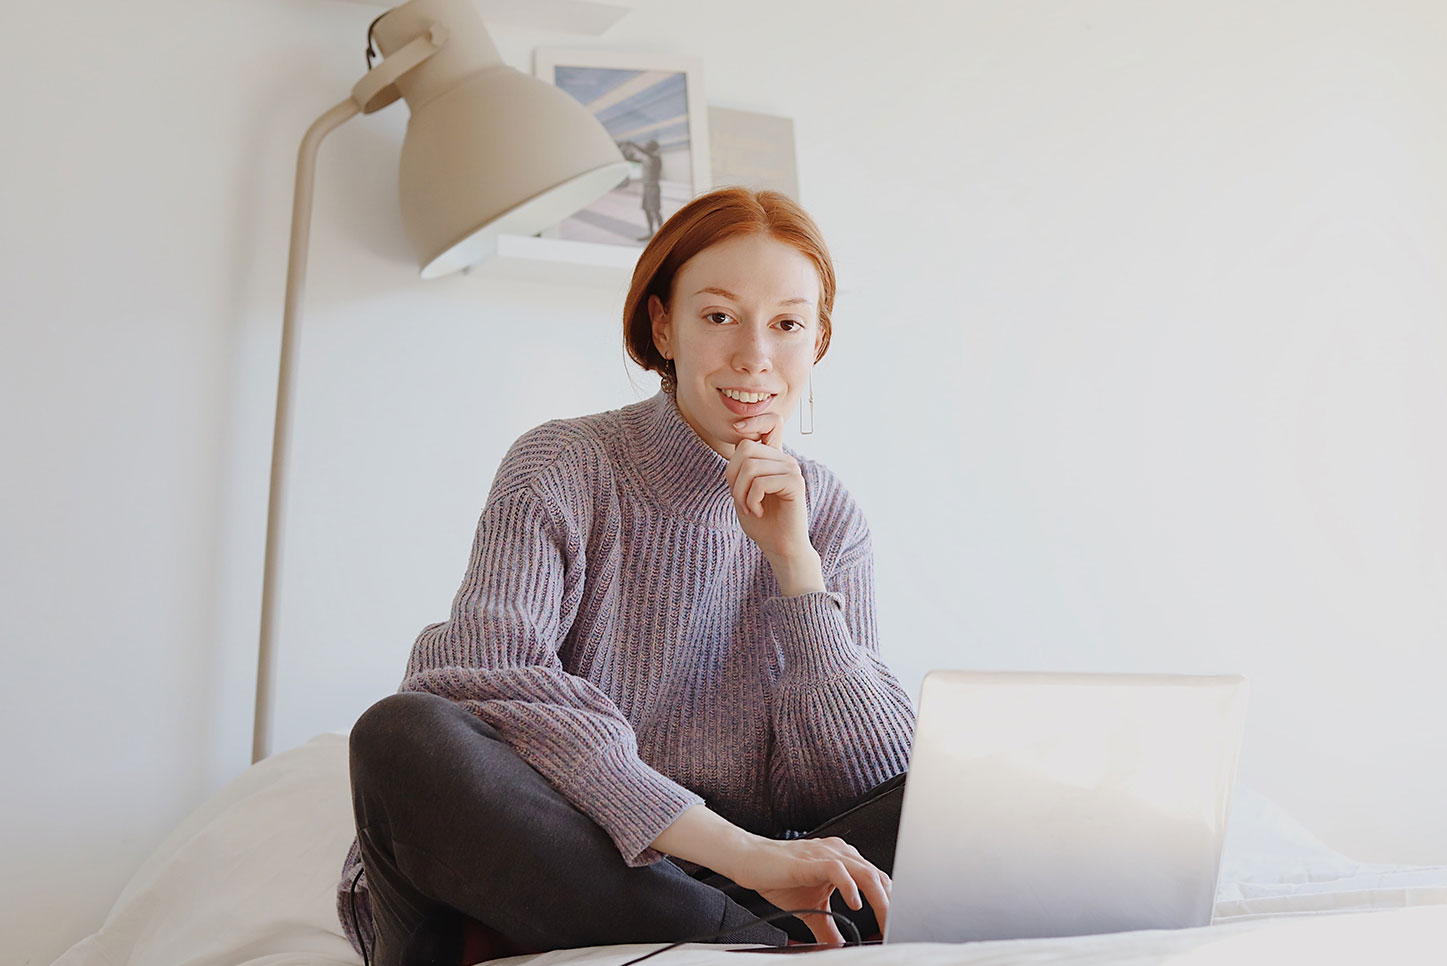 Woman sitting on bed using laptop to work.